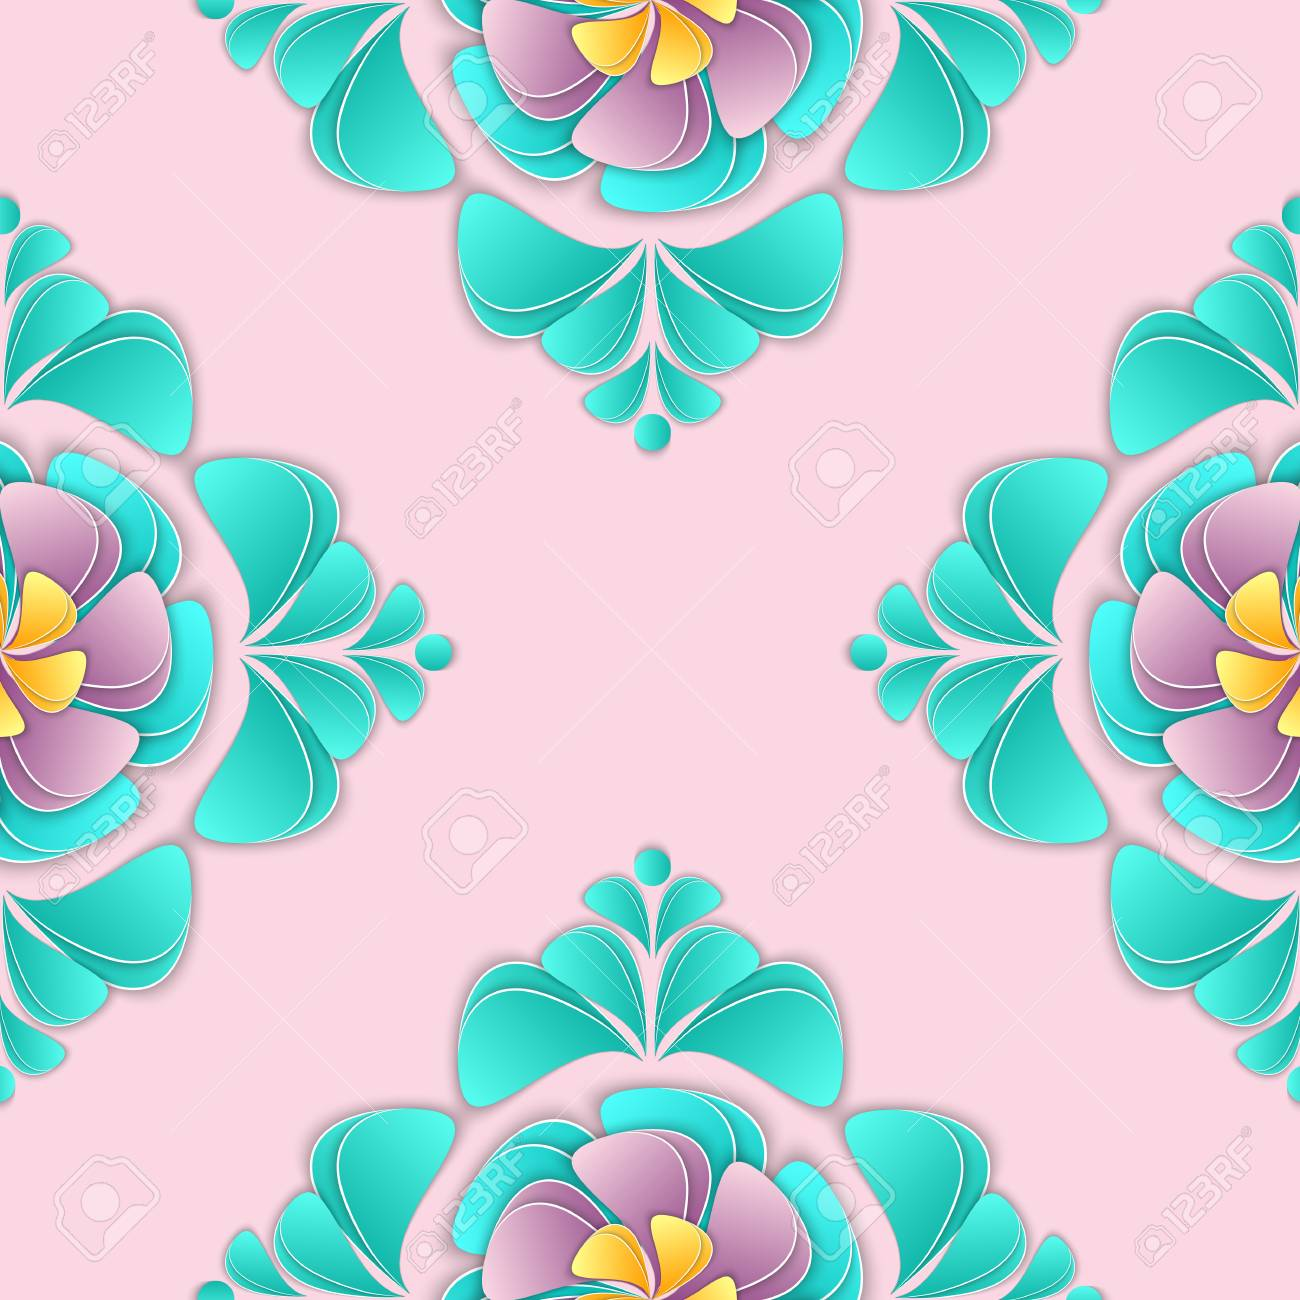 Paper Flowers And Petals Vector Illustration Floral 3d Background